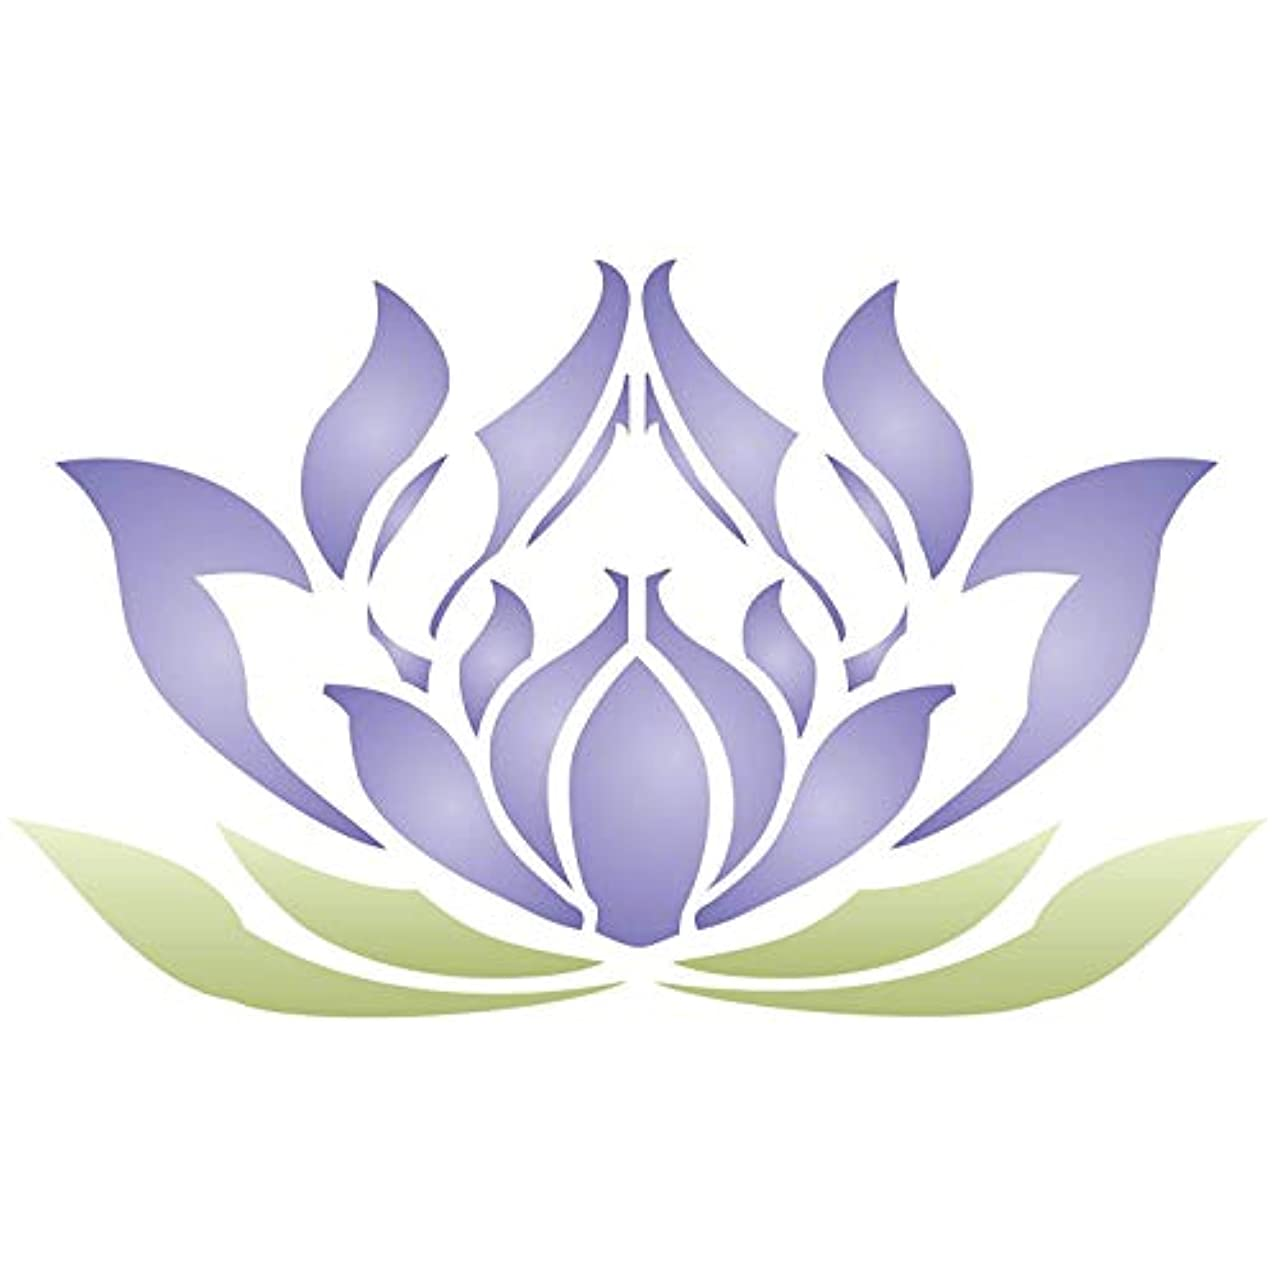 """Lotus Flower Stencil - (size 5""""w x 3""""h) Reusable Wall Stencils for Painting - Best Quality Lotus Blossom Ideas - Use on Walls, Floors, Fabrics, Glass, Wood, Terracotta, and More…"""